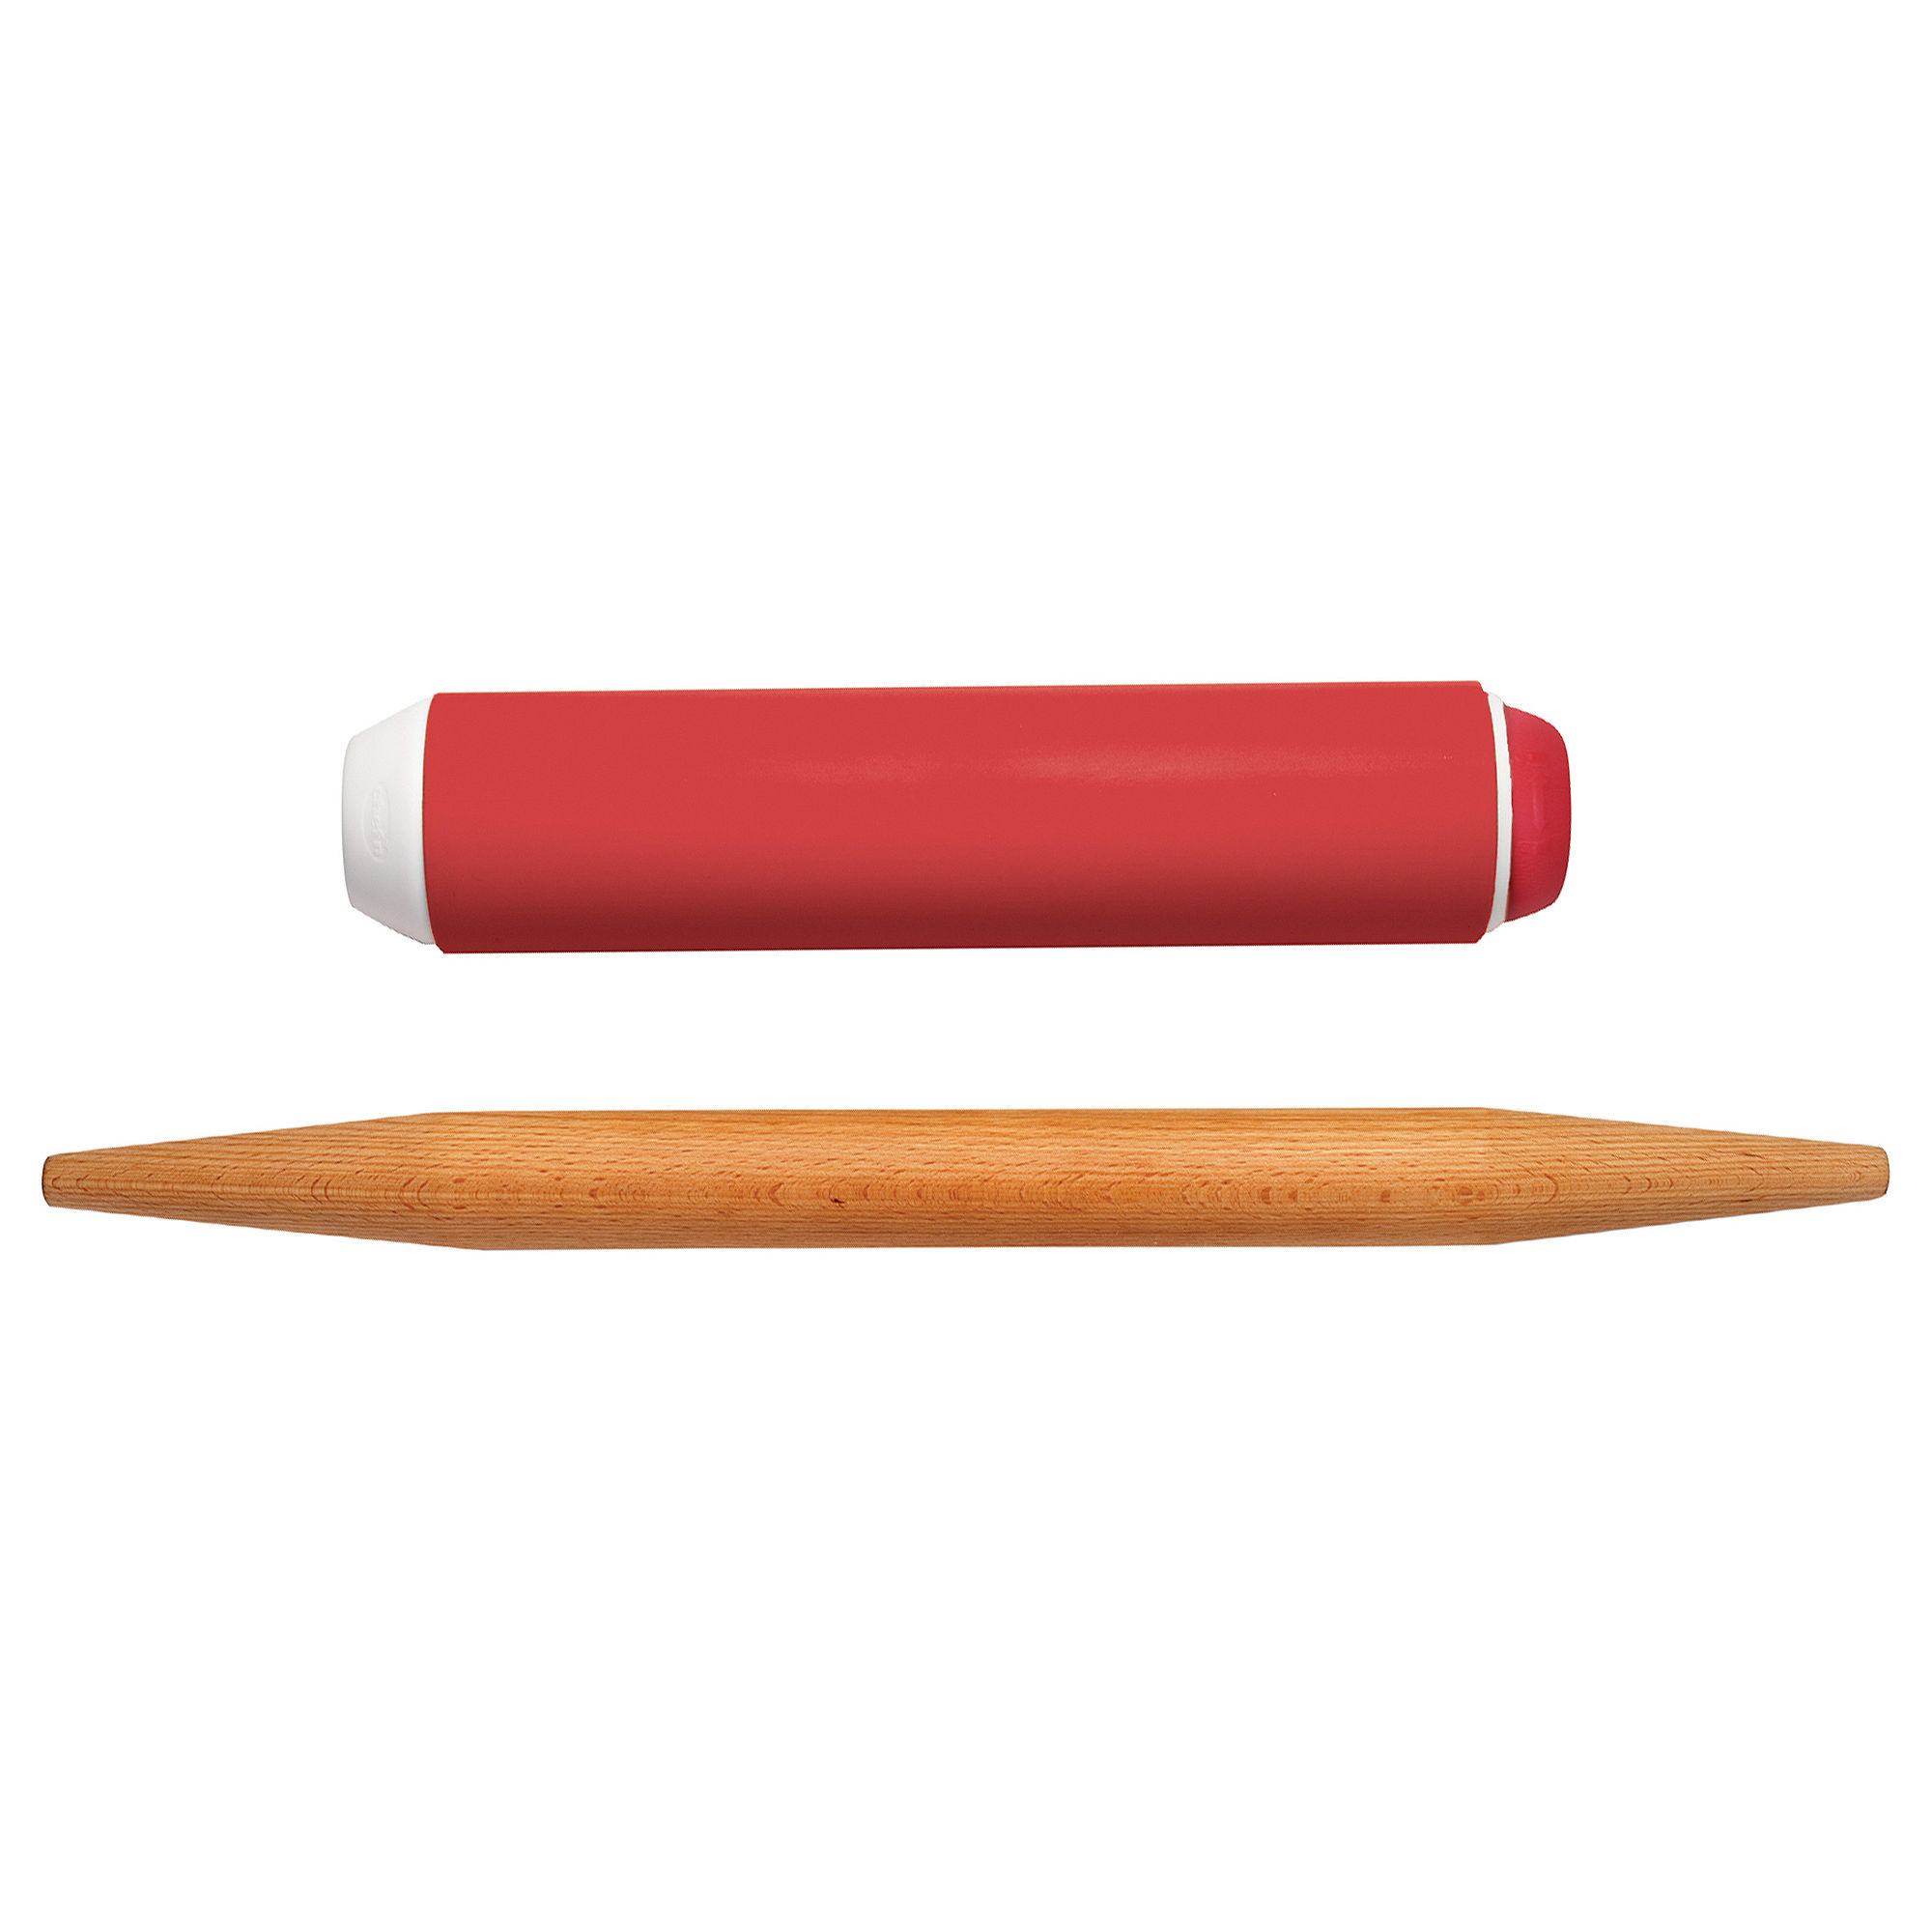 "Chef'n PinPair"" Silicone and French Rolling Pin Set"